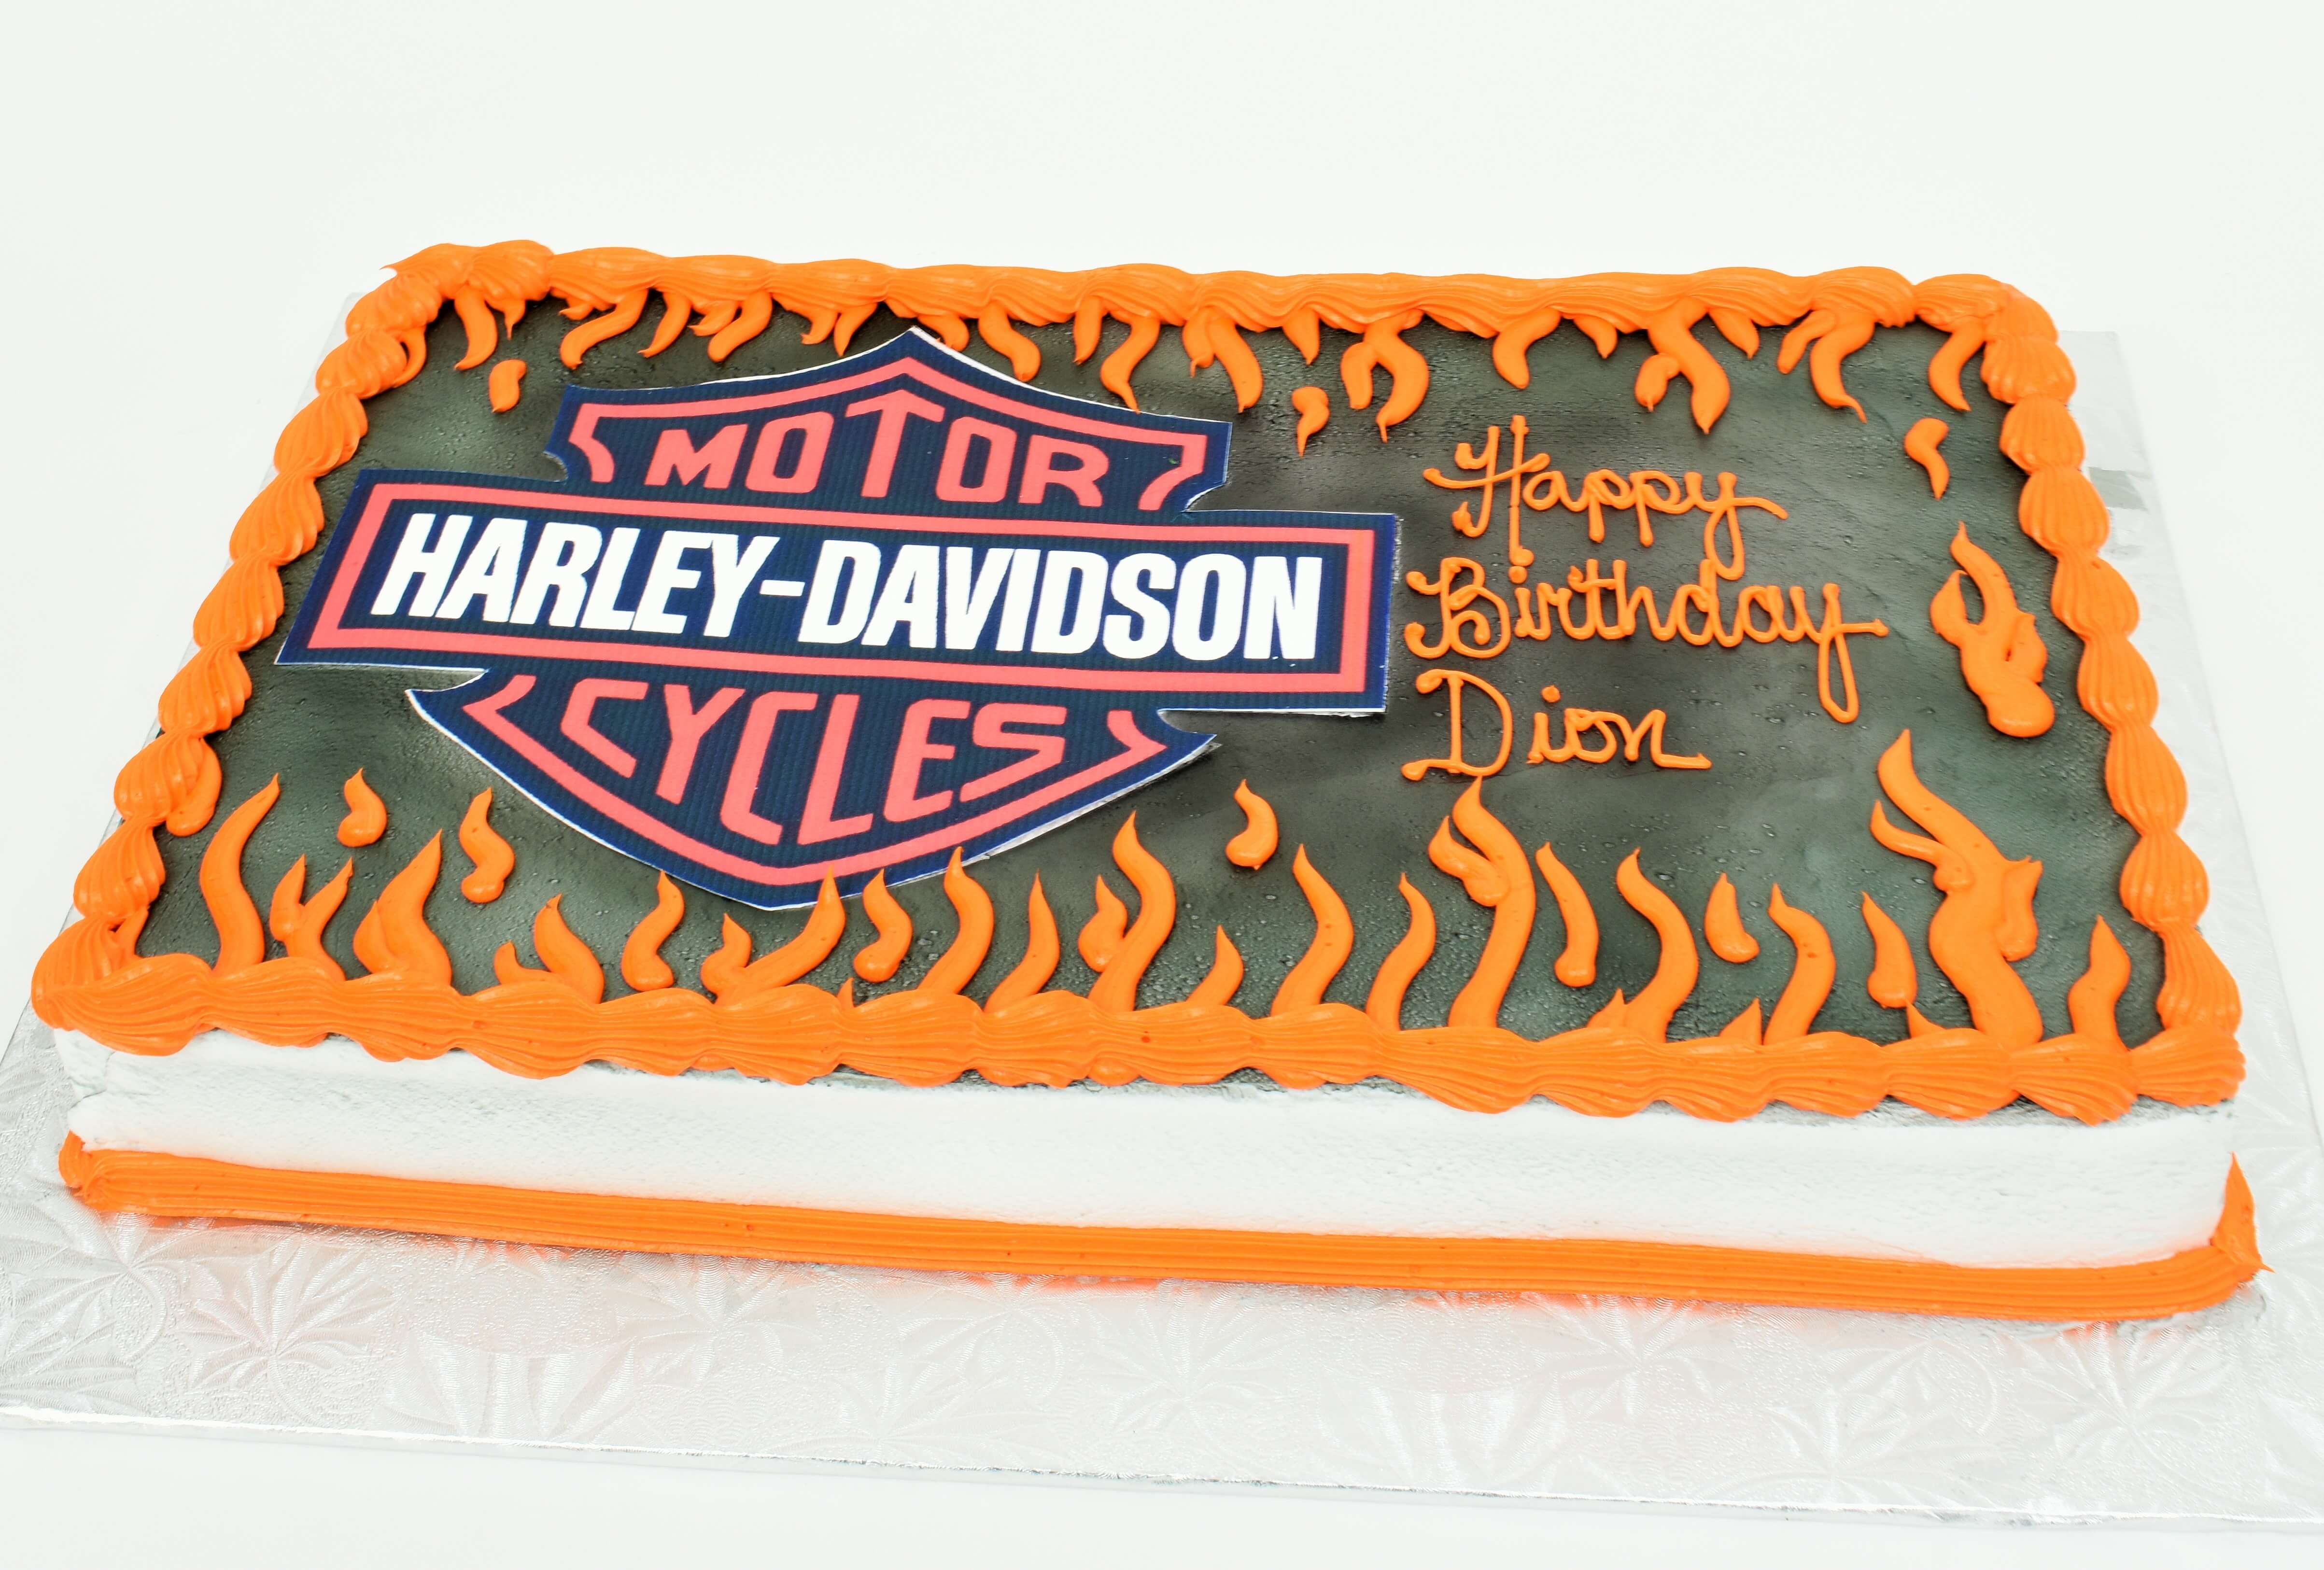 McArthur's Bakery Custom Cake with Harley Davidson and Flames